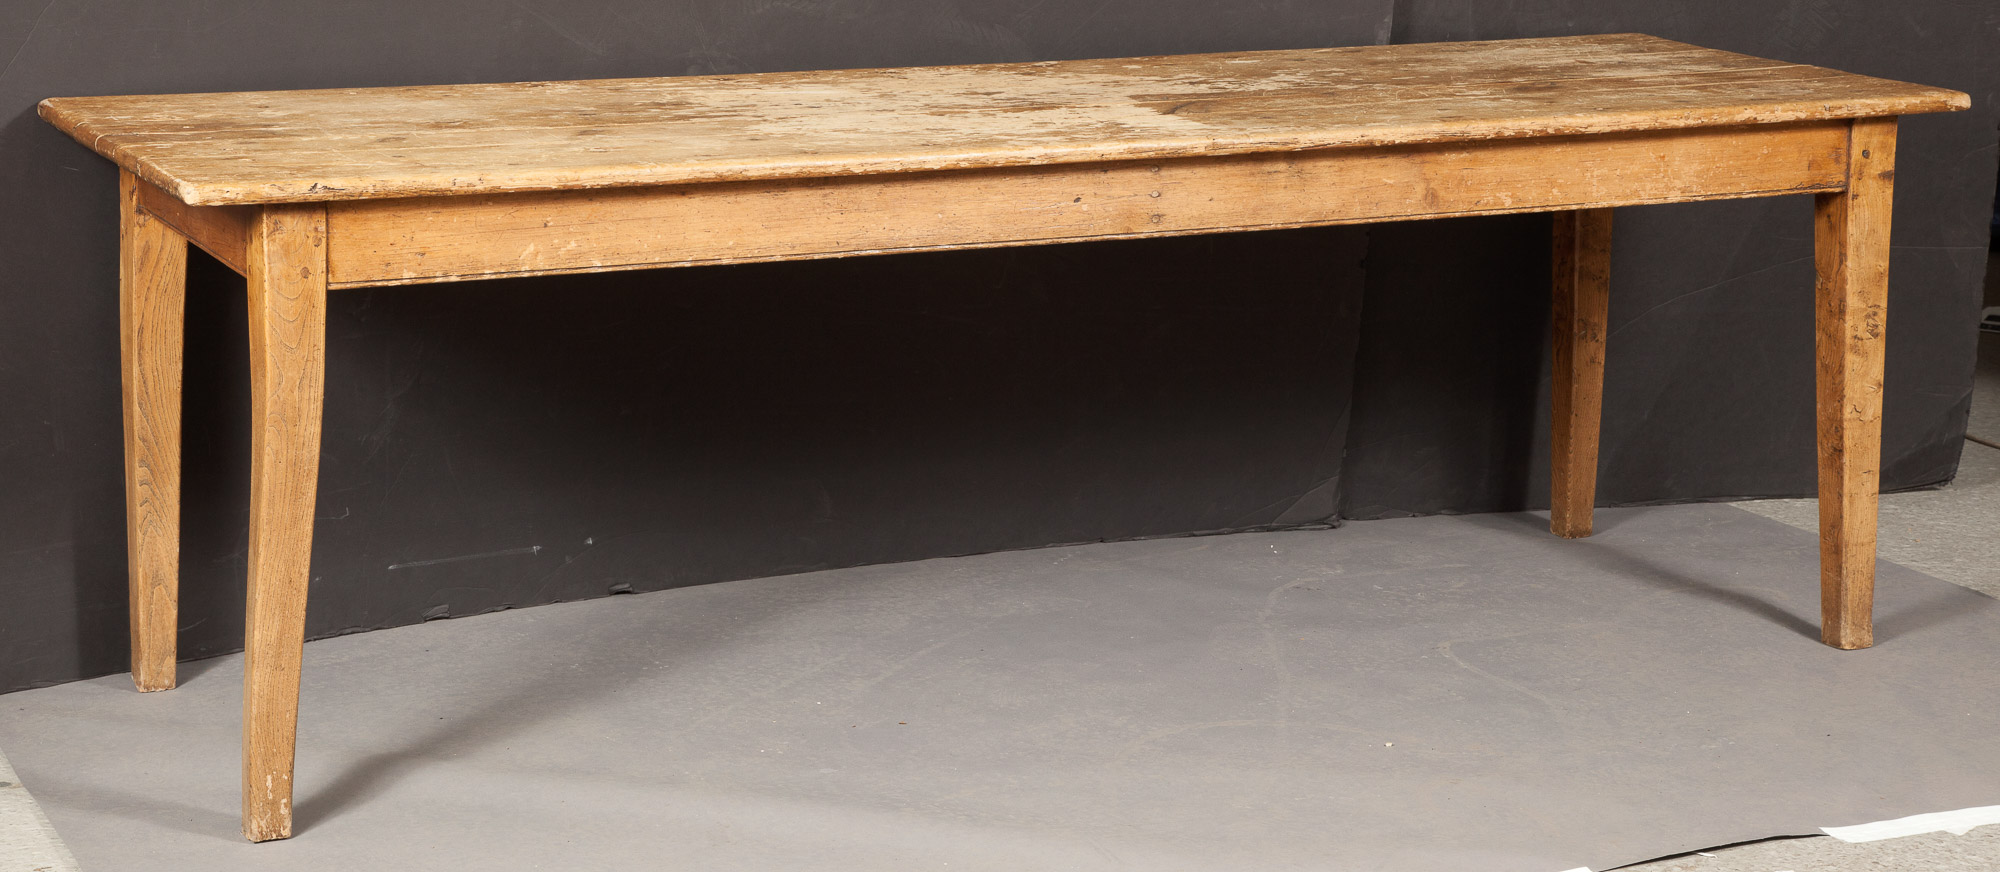 Lot image - Pine and Elmwood Farm Table